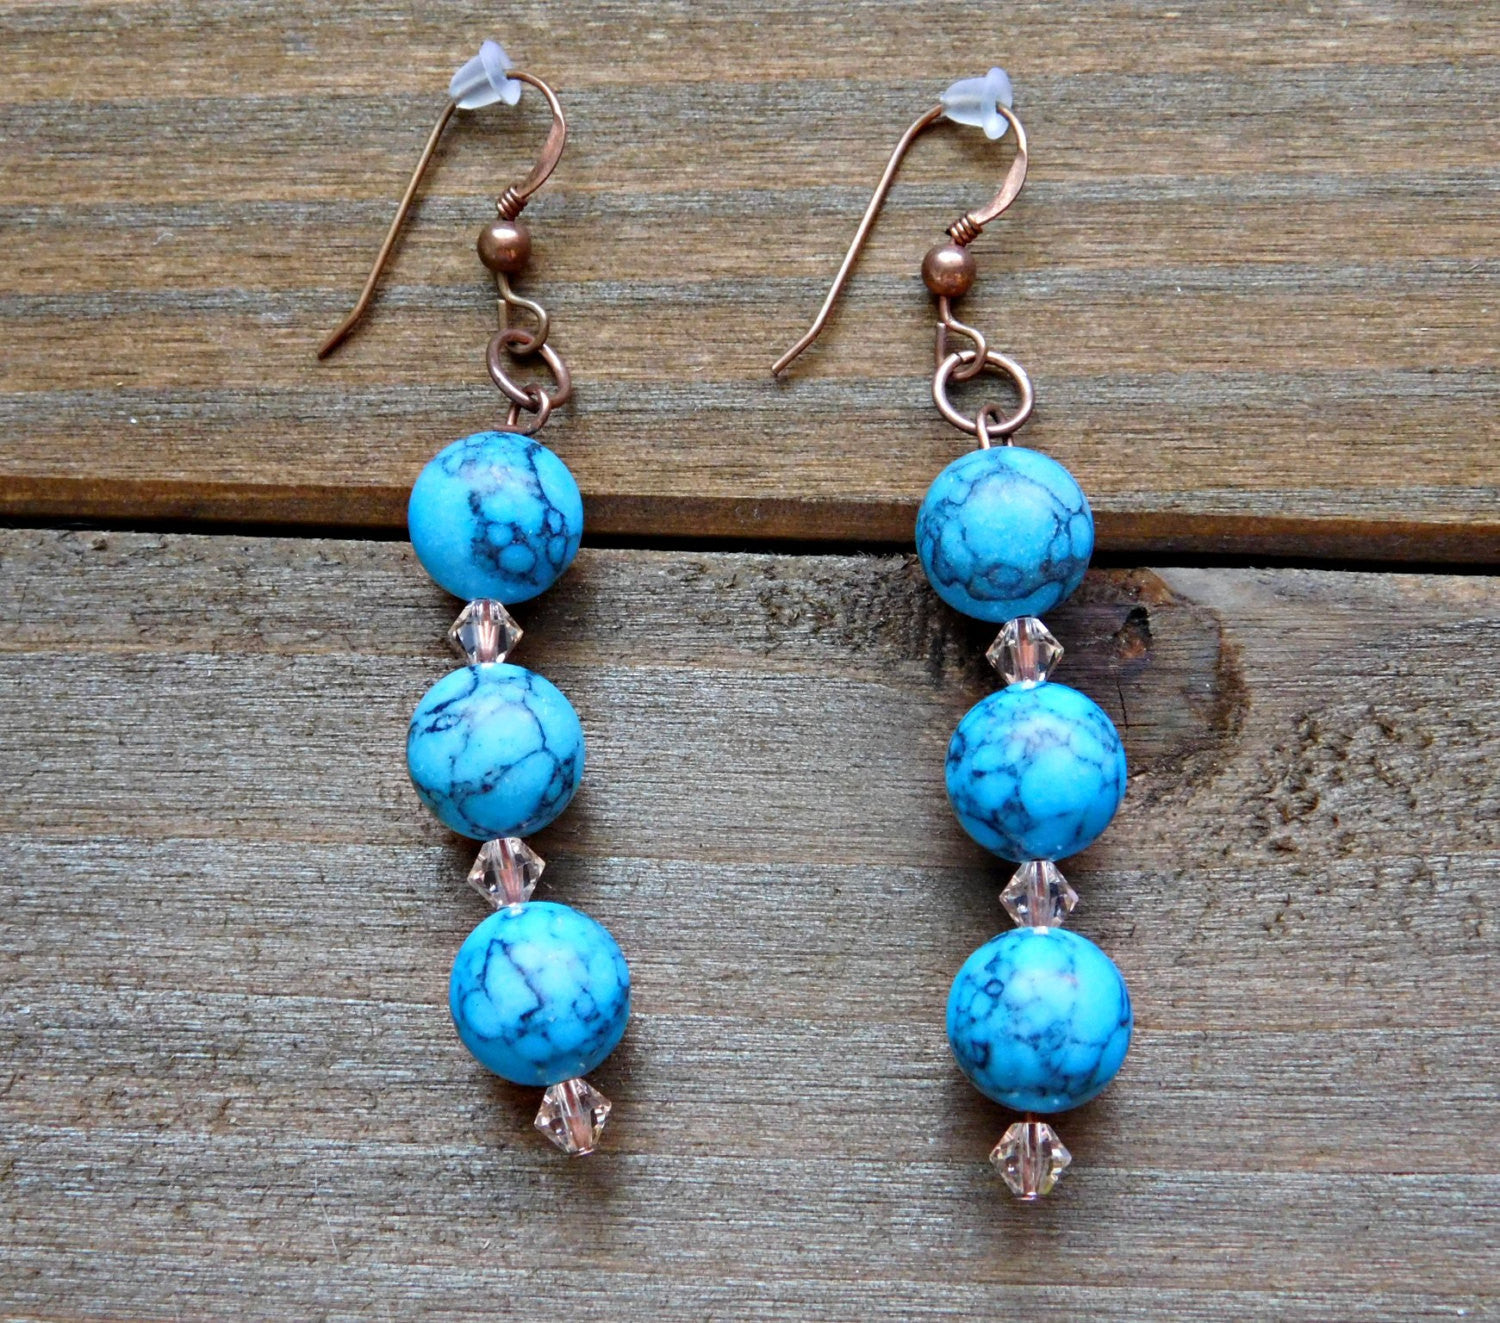 Turquoise Earrings Blue Crystal Earrings Blue Gemstone Earrings Turquoise Gemstone Copper Earrings Natural Gem Stone Yoga Jewelry Women Gift